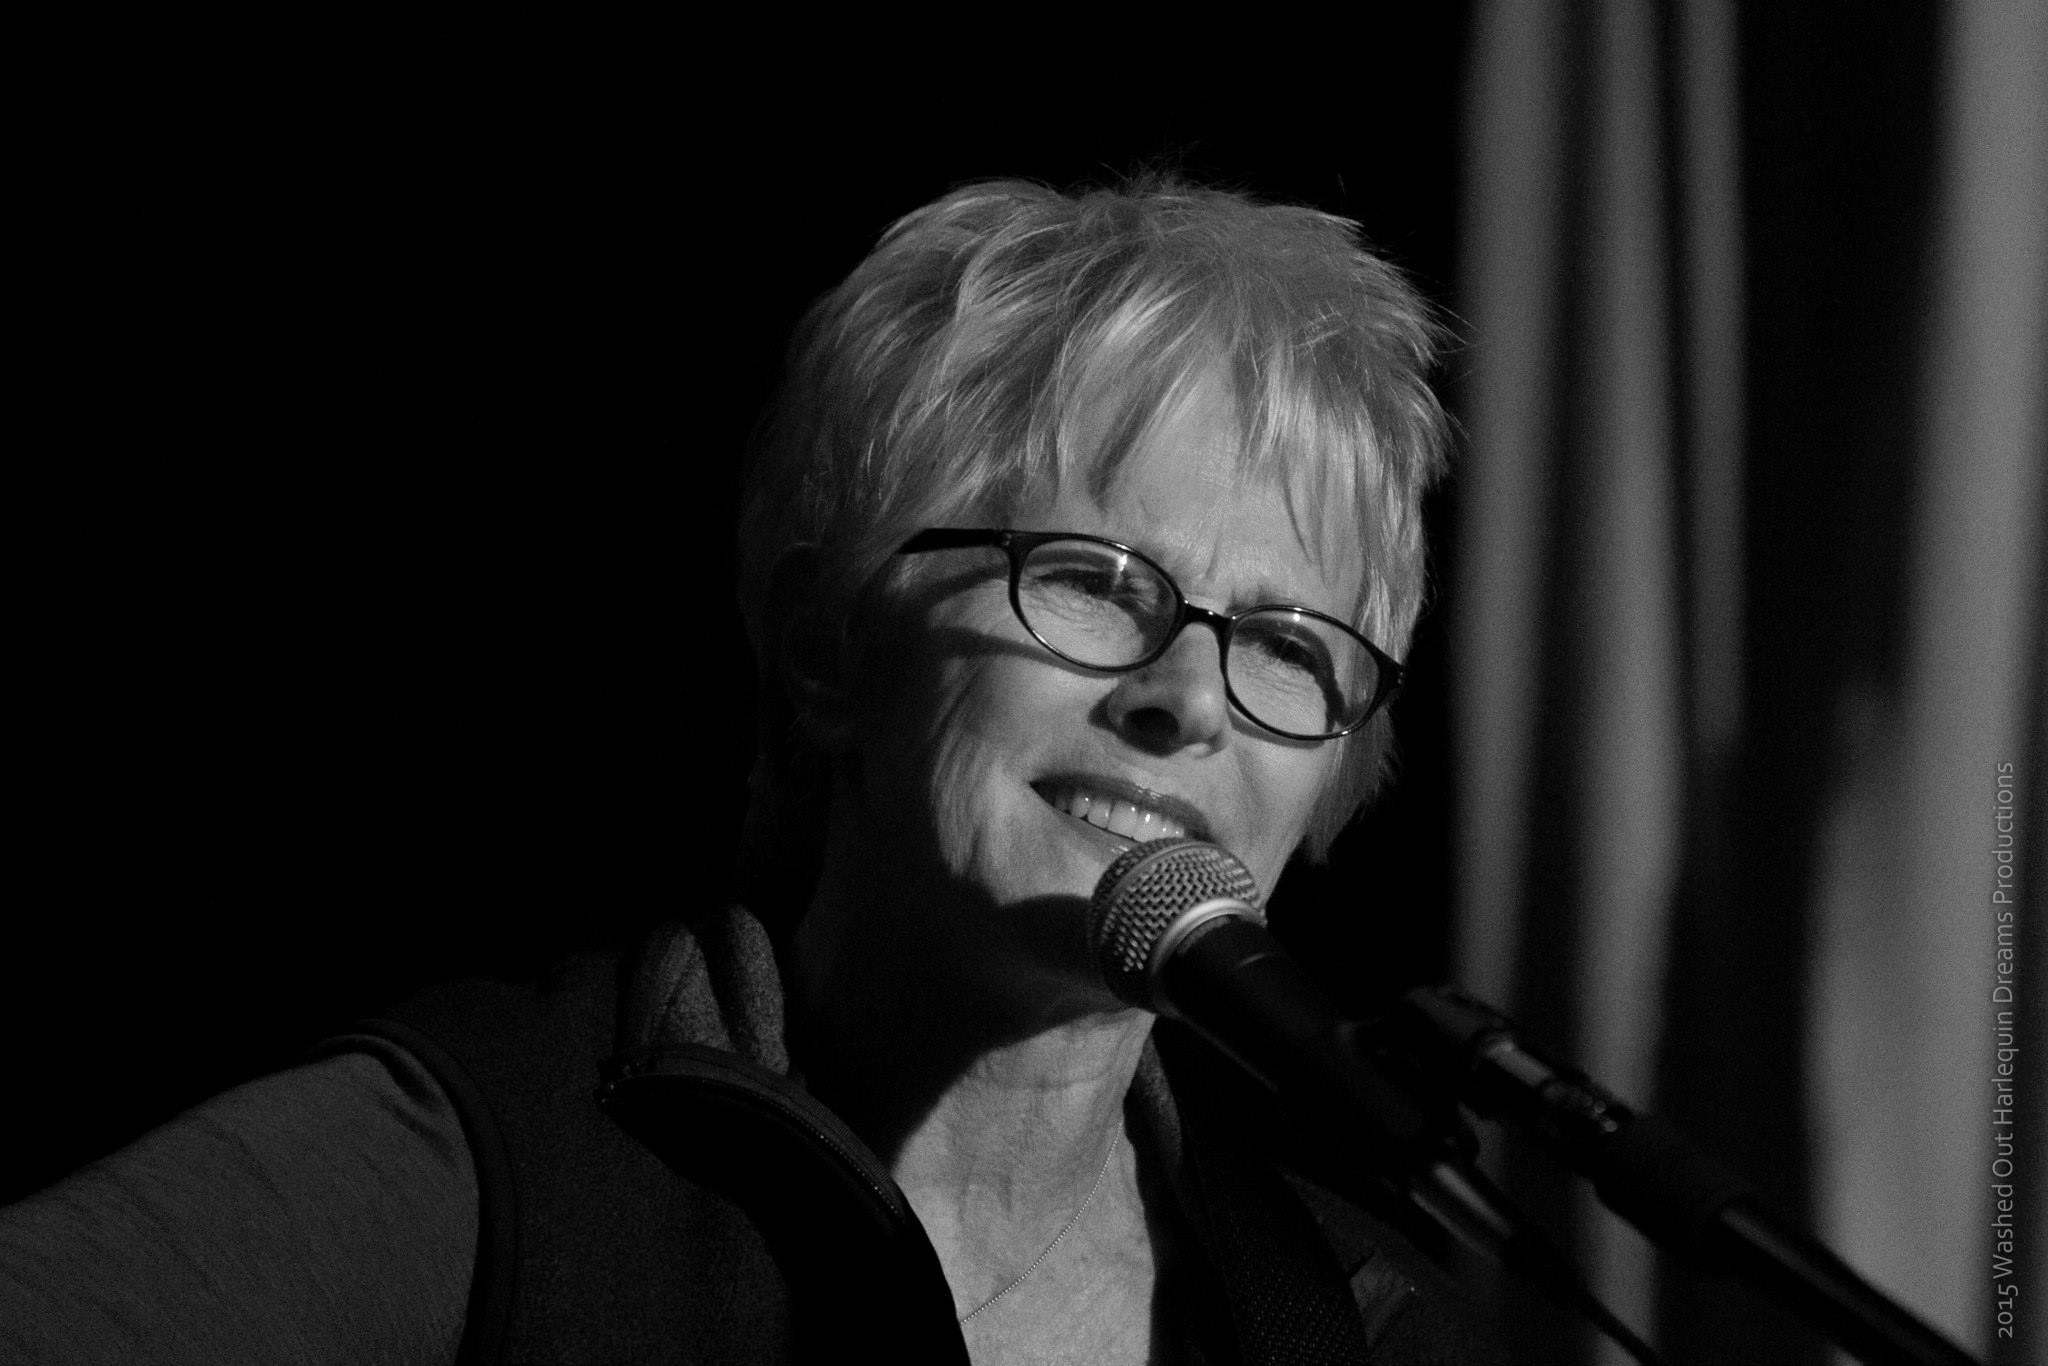 tracy-newman-at-the-pilsner-room-in-black-and-white